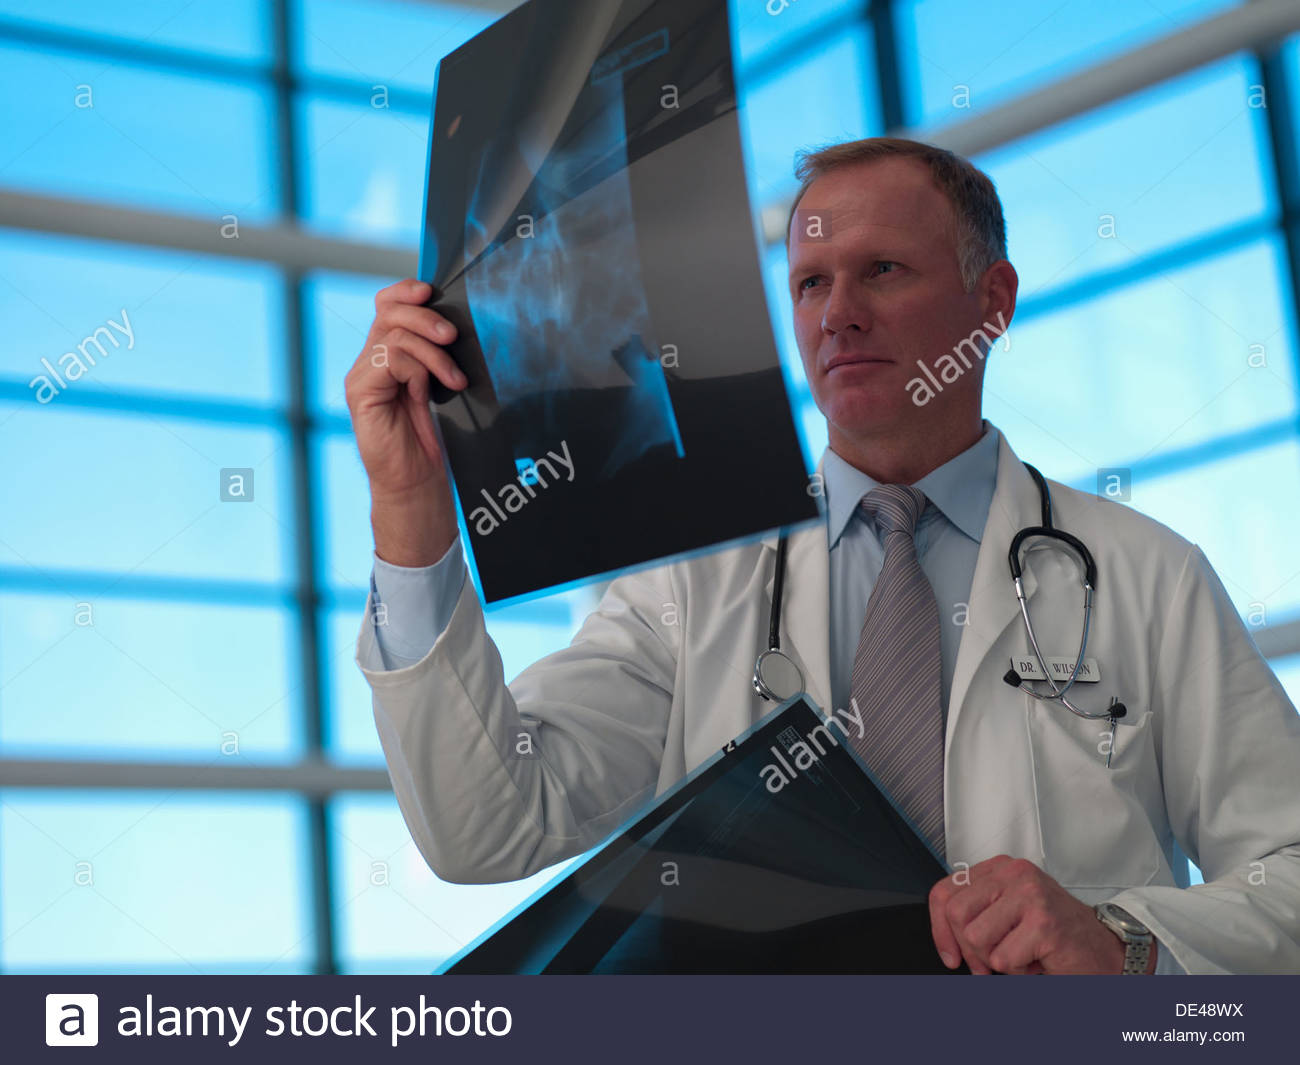 Doctor reviewing x-rays - Stock Image